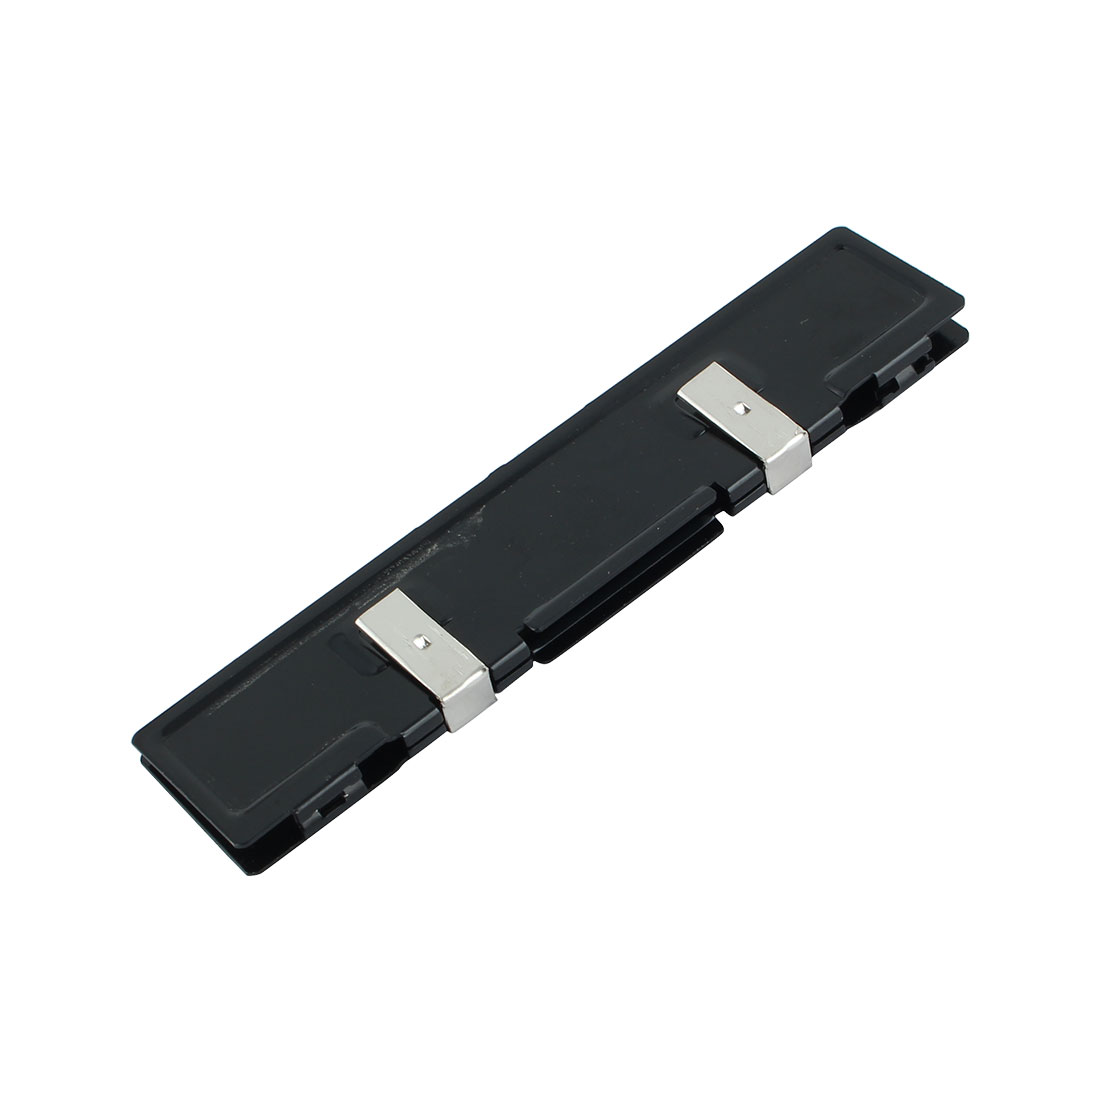 Heatsink Shim Spreader Cooler Cooling Black for SDR DDR RAM Memory